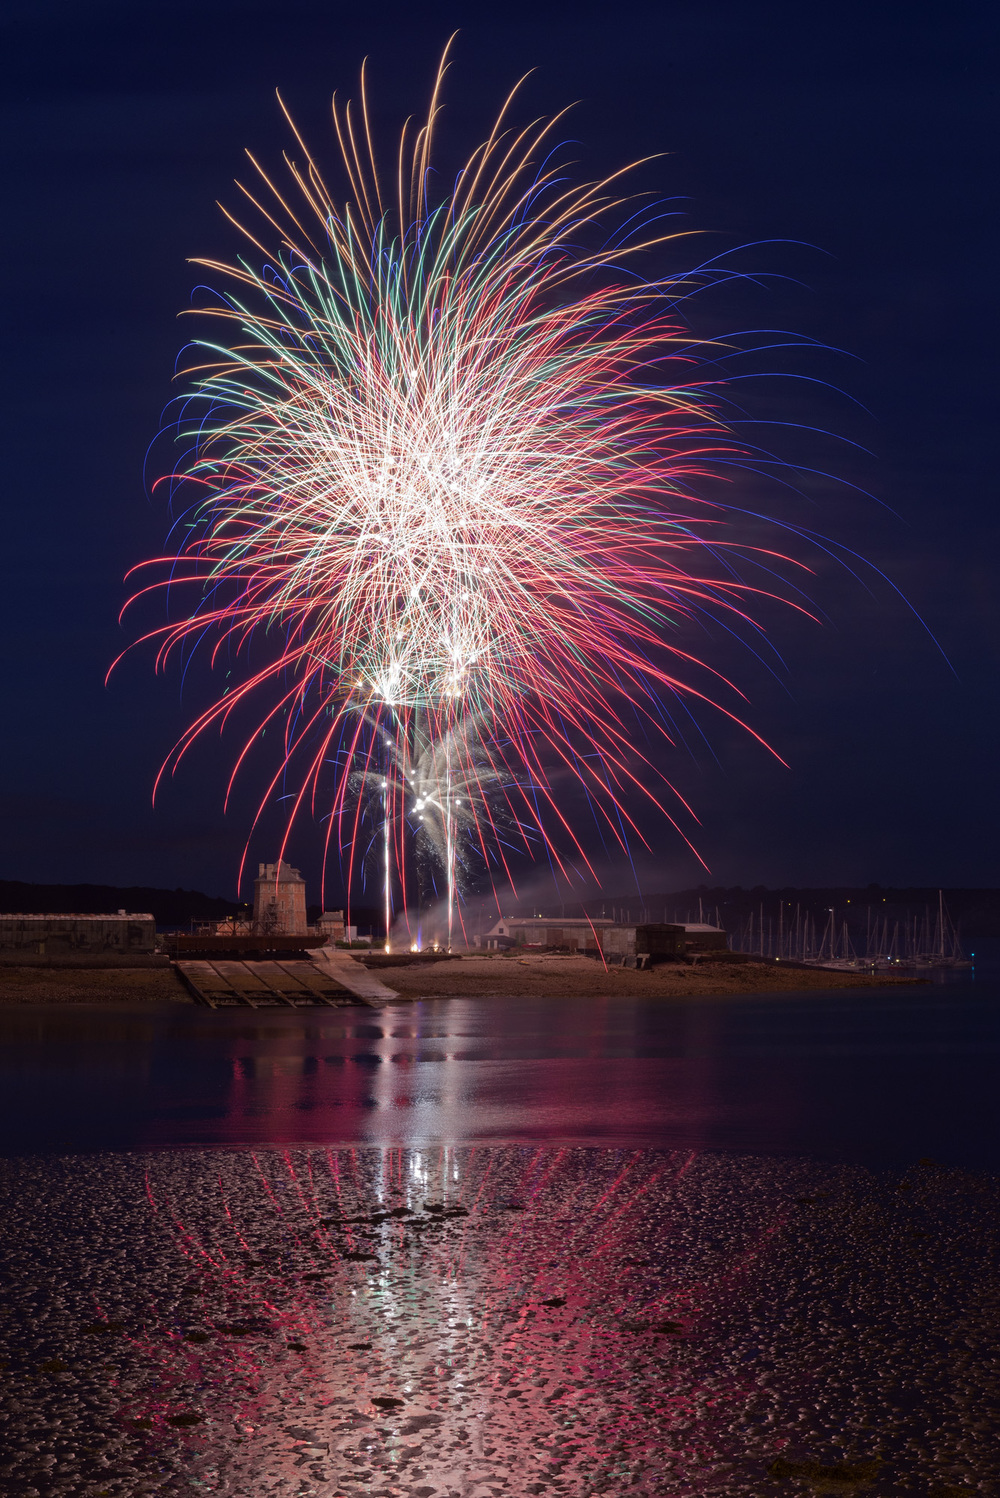 Fireworks_2: Nikon D800 with 24-70 mm Nikkor lens at 44 mm, ISO 200, 30 sec at f/16, tripod